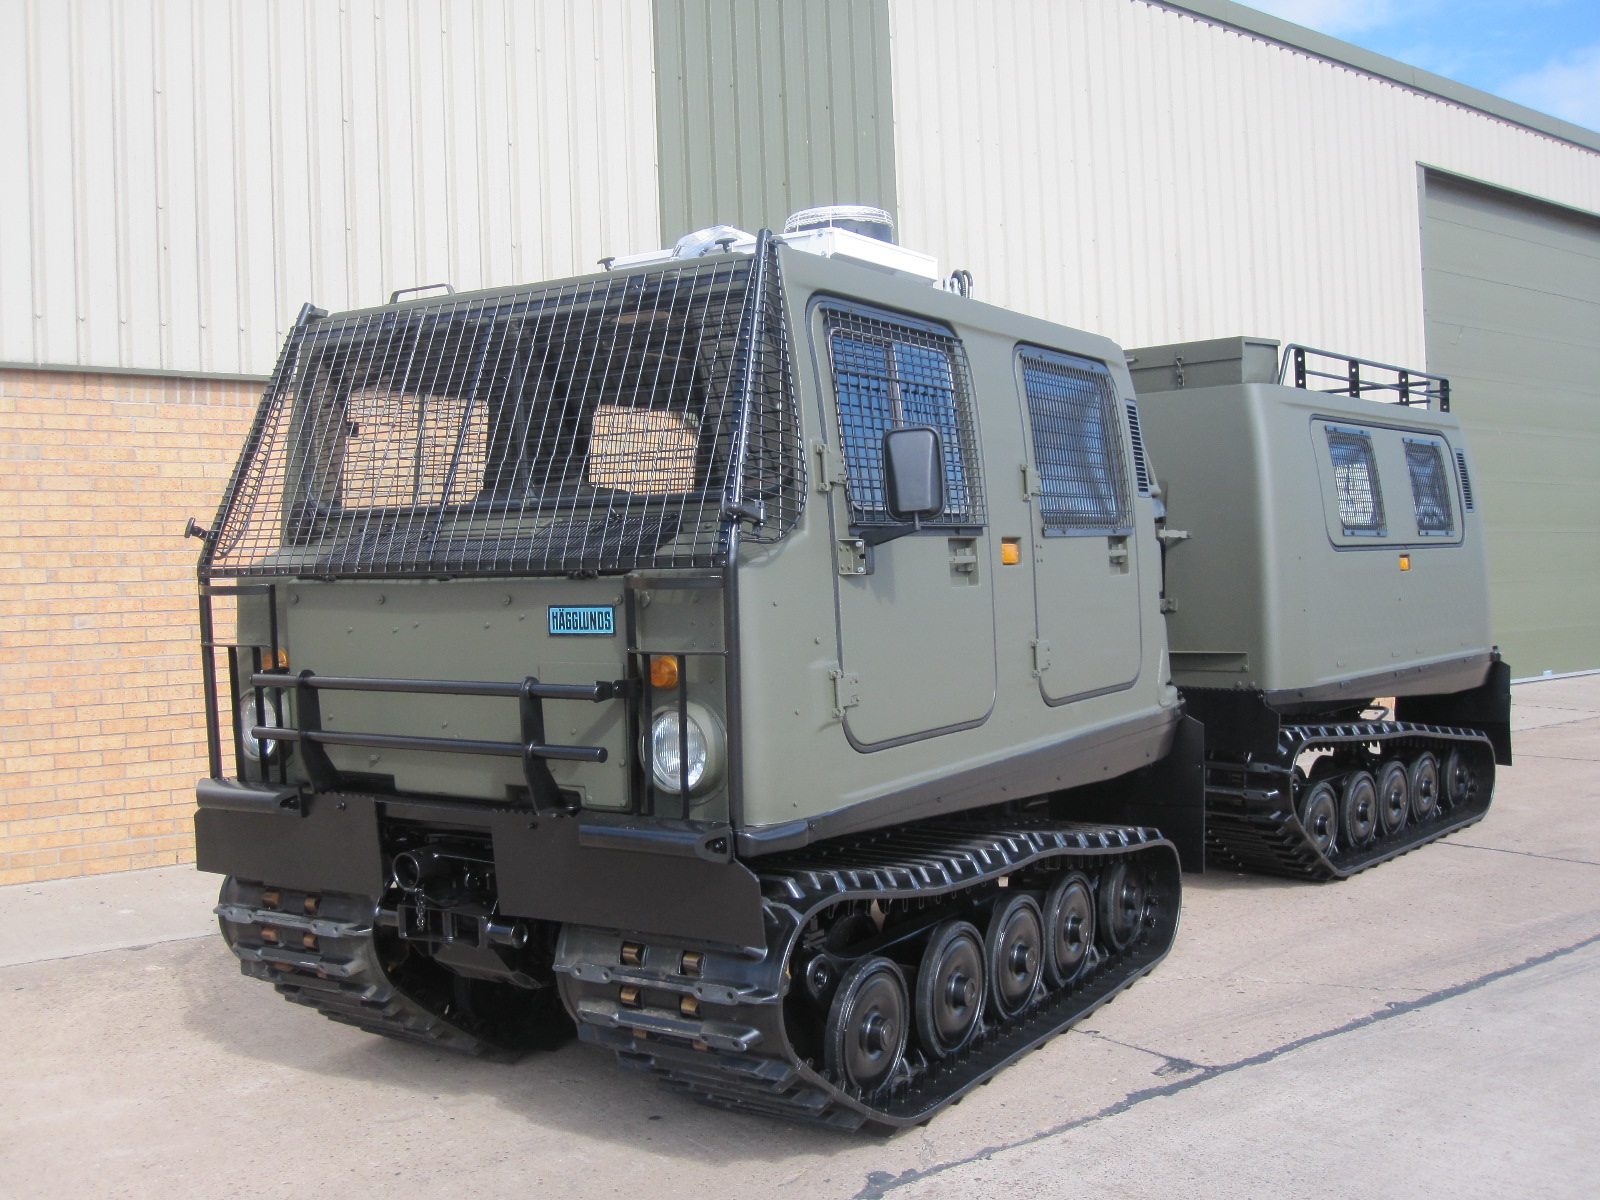 Hagglund BV206 Personnel Carrier (Petrol/Gasolene) for sale